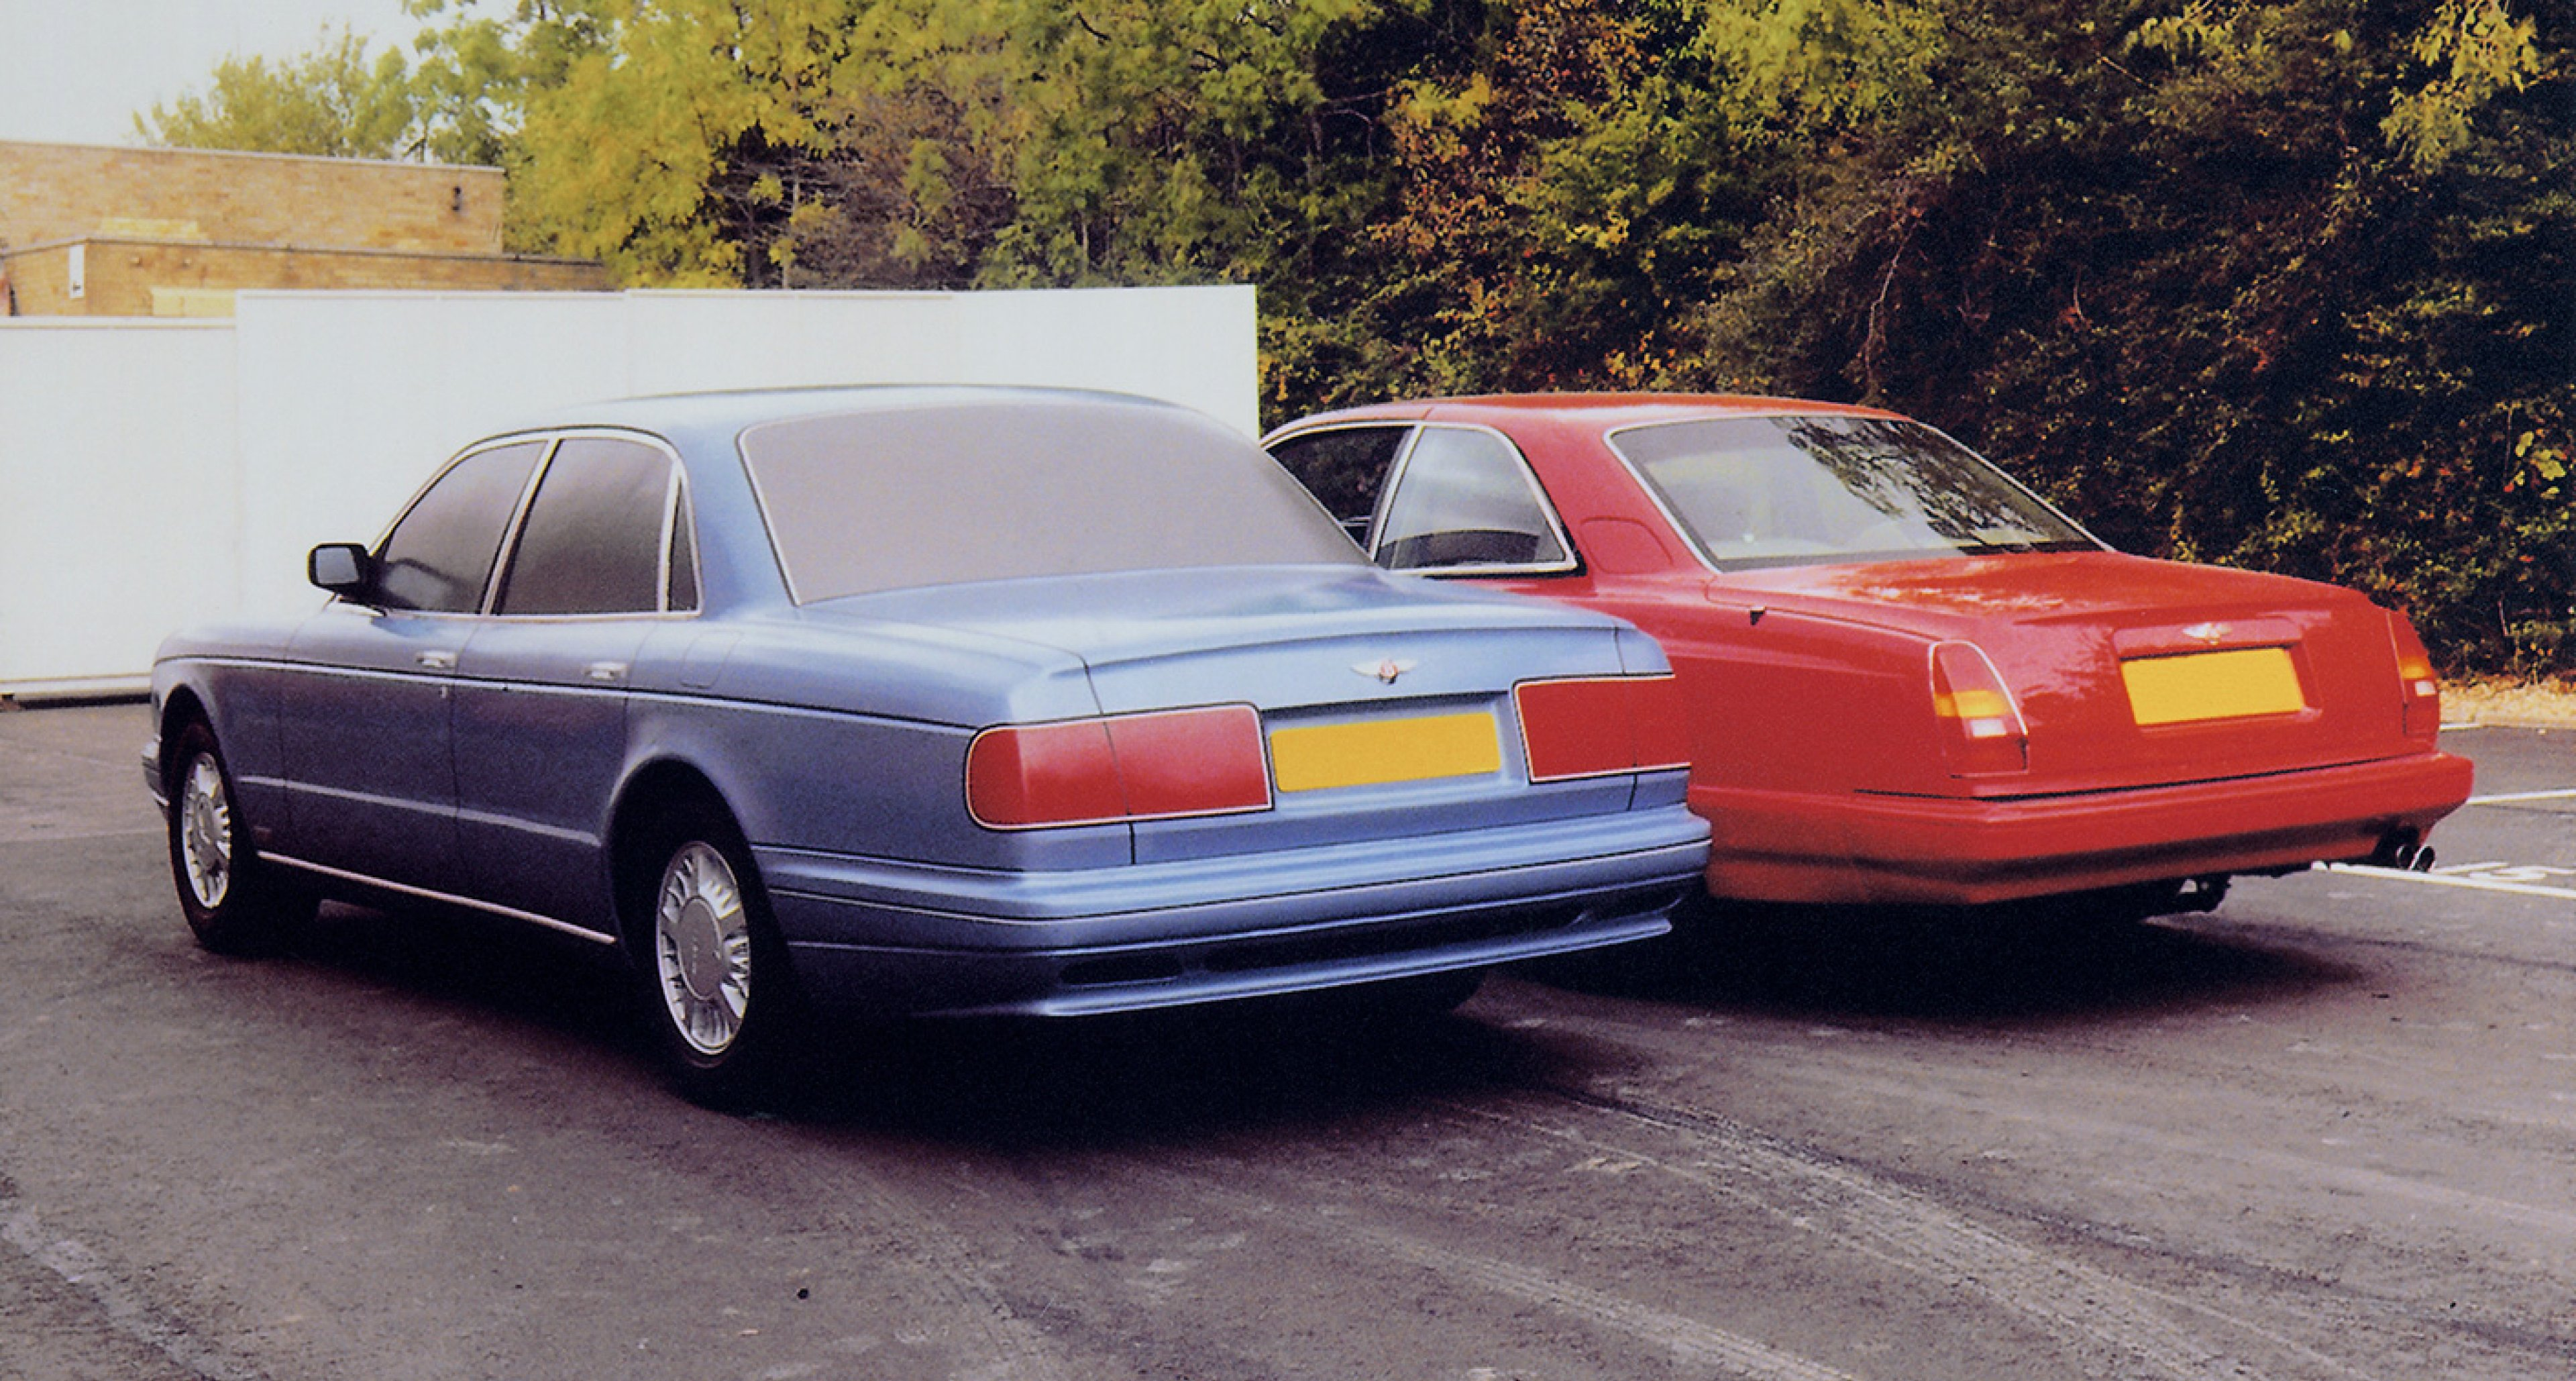 1990: A new Bentley saloon proposal is evaluated alongside a Continental R